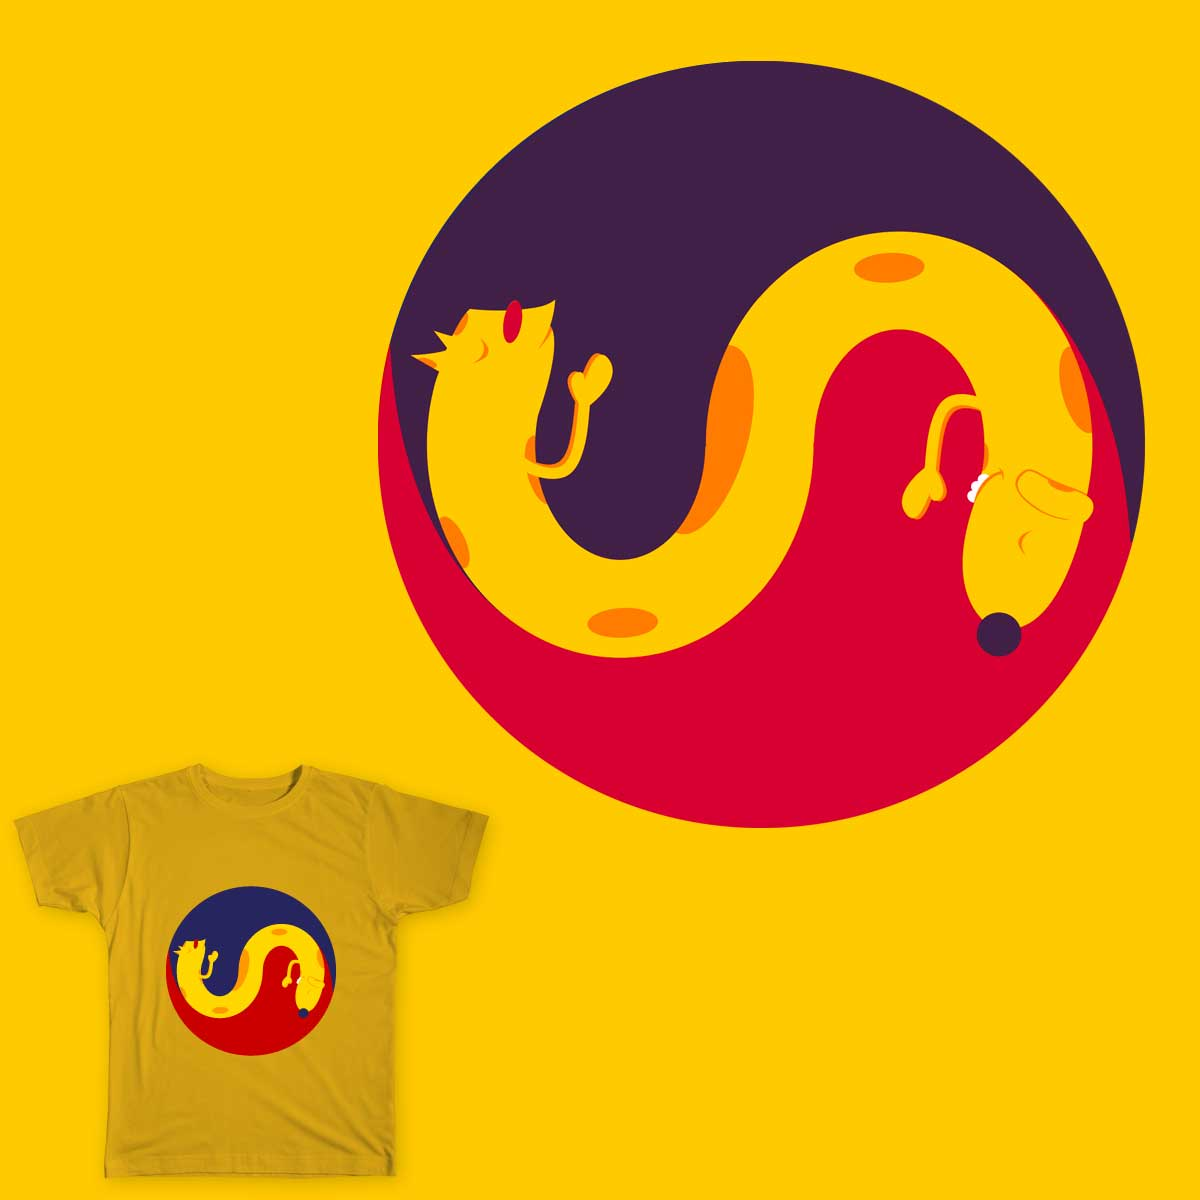 Nature's Yin and Yang by kalmansor on Threadless